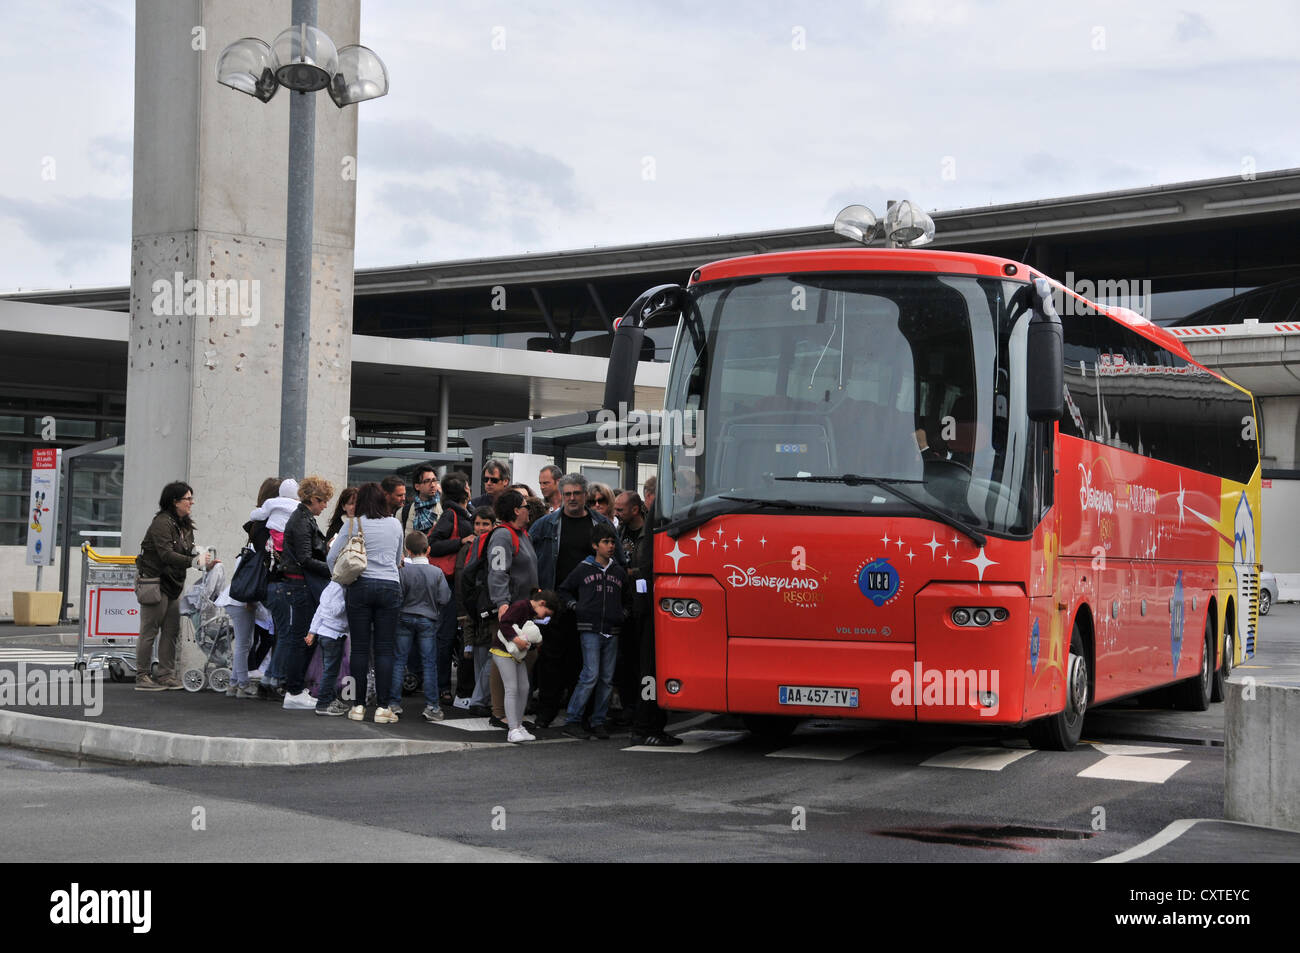 Bus Roissy Bus For Disneyland Roissy Charles De Gaulle Airport France